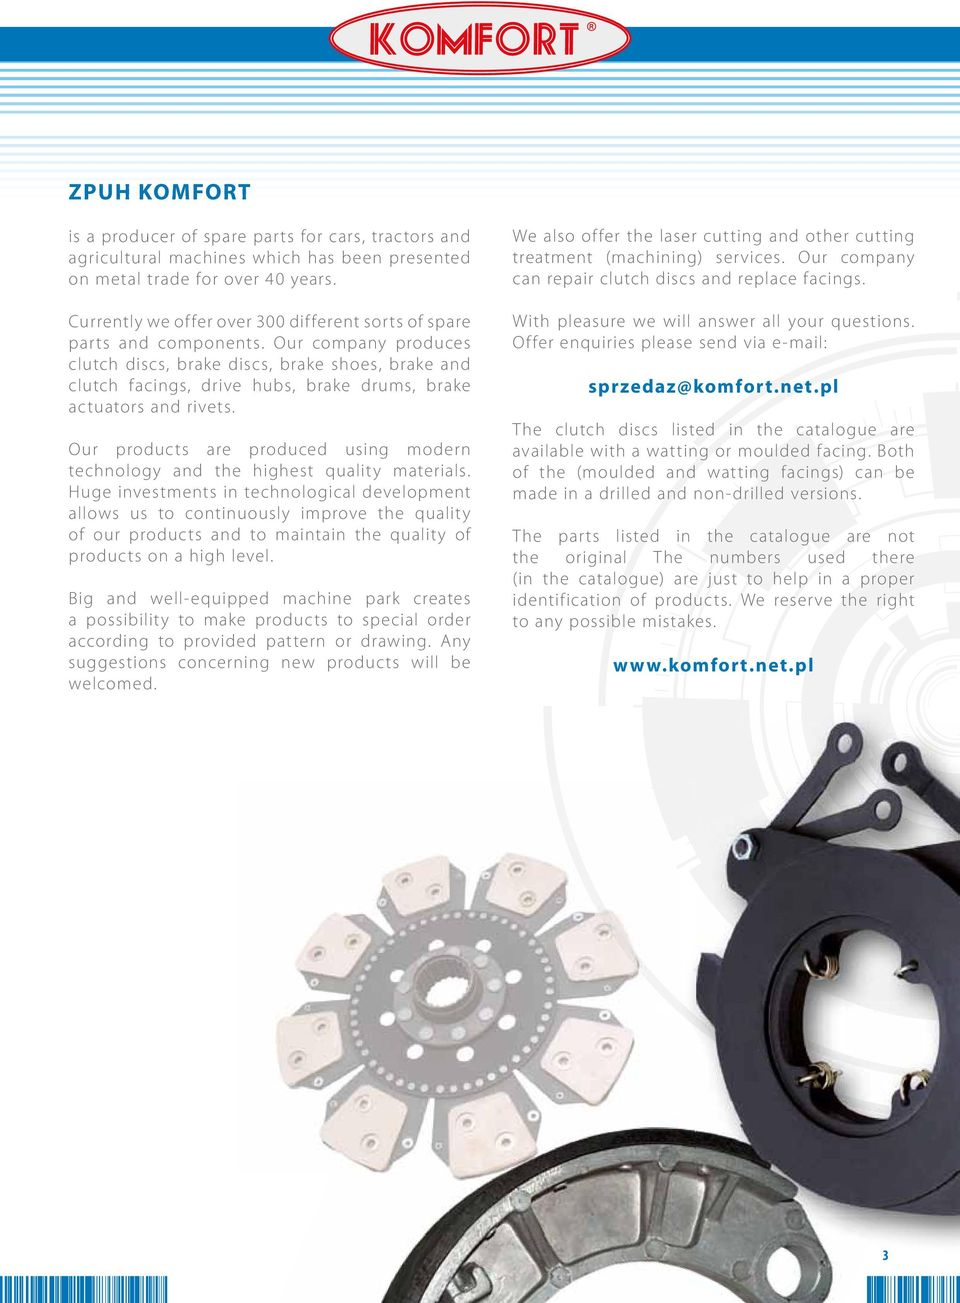 Our company produces clutch discs, brake discs, brake shoes, brake and clutch facings, drive hubs, brake drums, brake actuators and rivets.